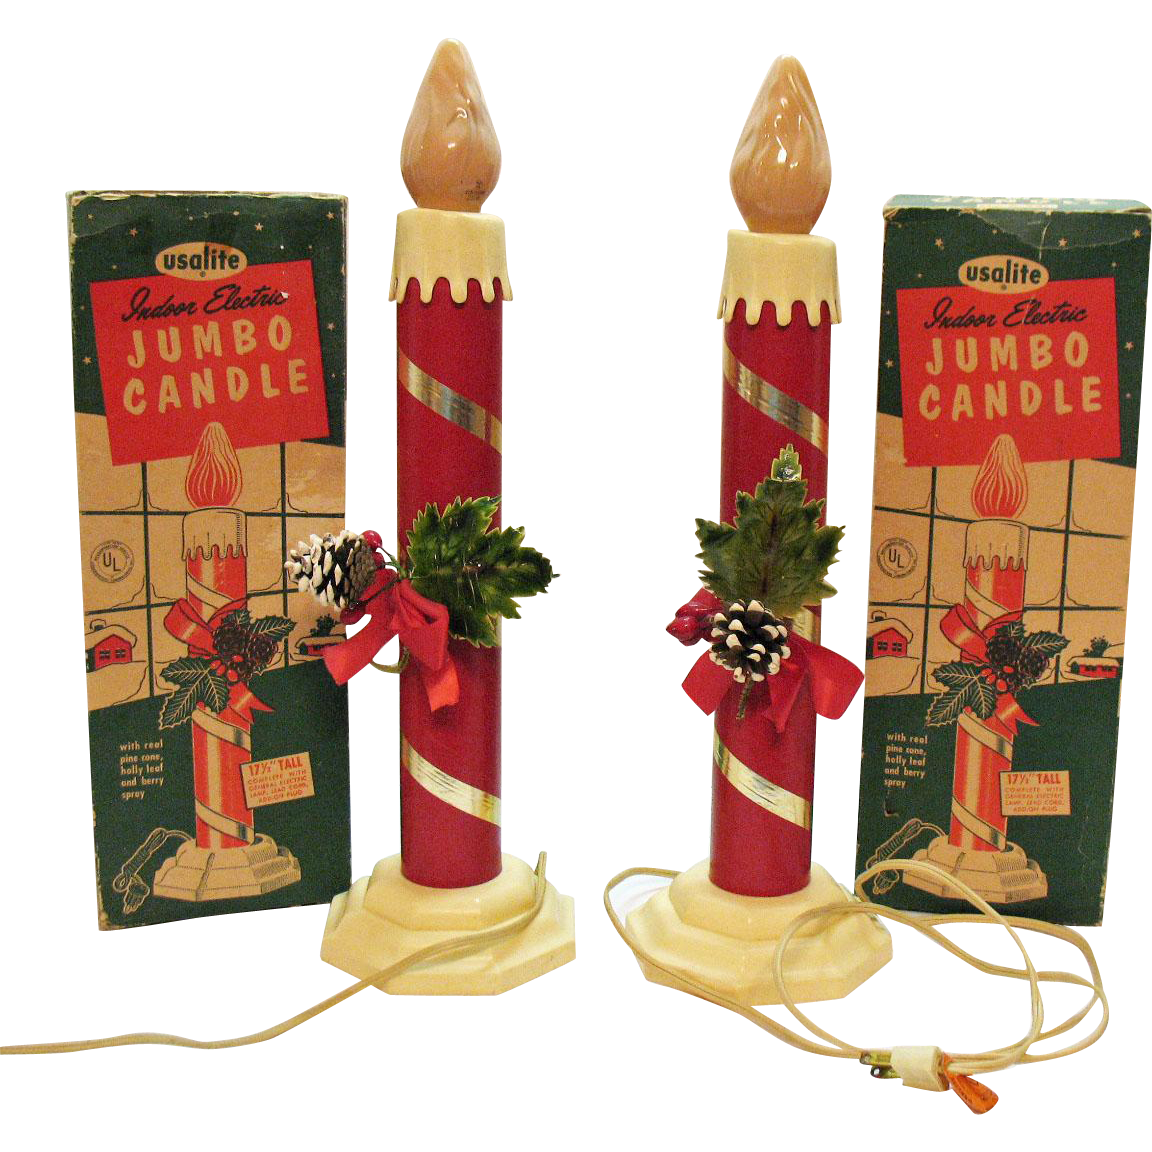 Vintage christmas decorations 1950s - Vintage Christmas Large Indoor Jumbo Electric Candles 1950s Work Very Good Condition